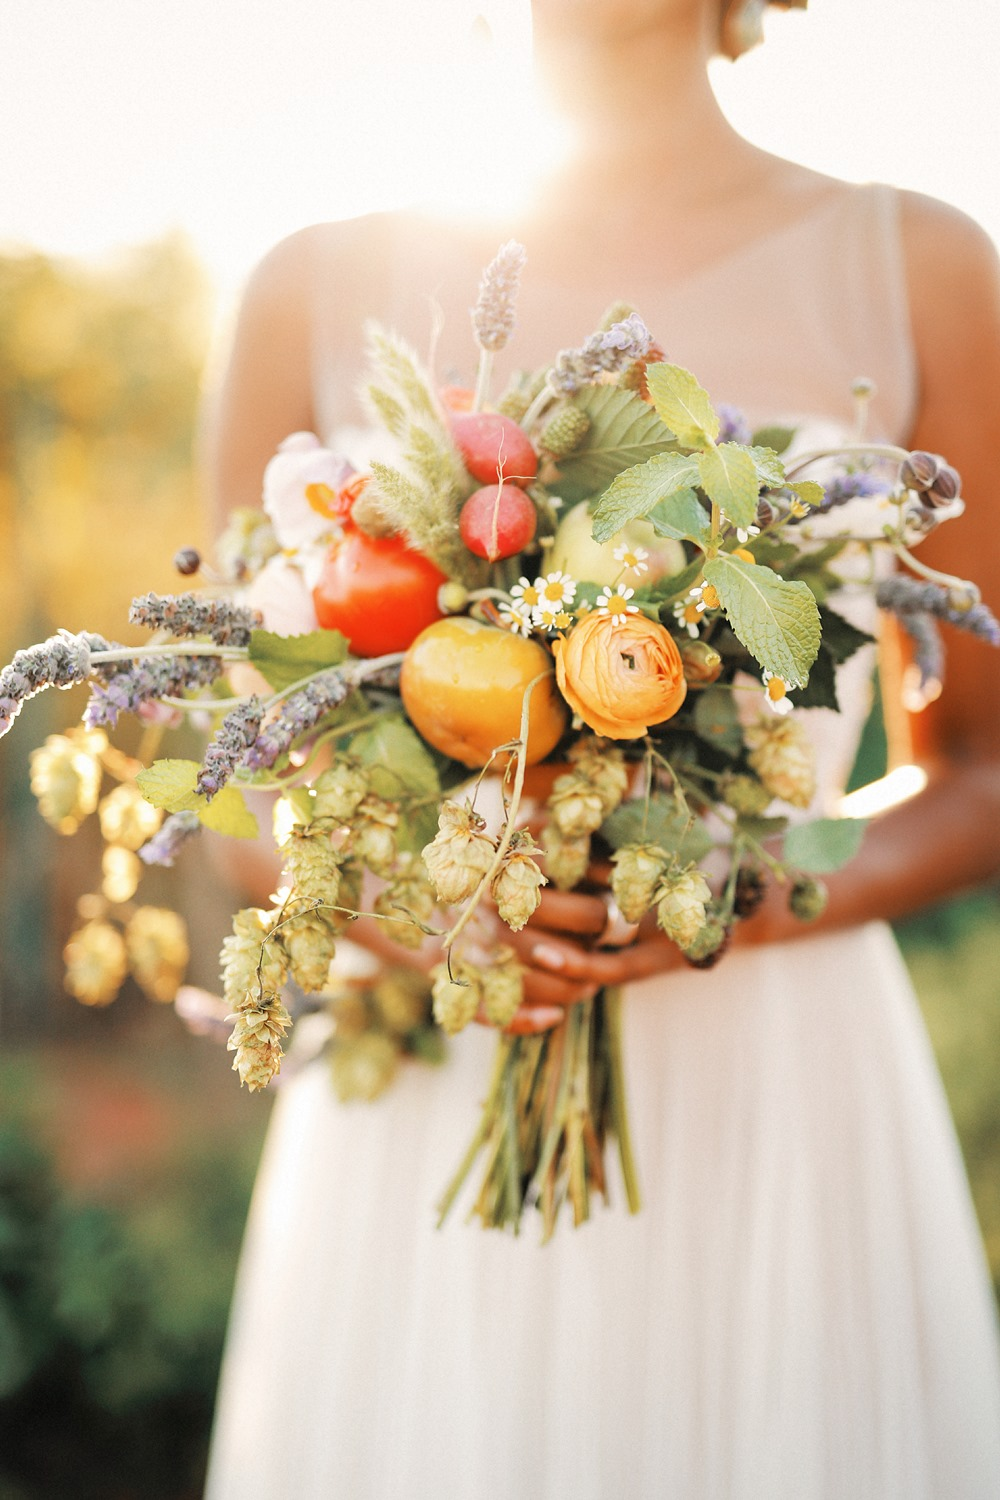 organic bridal bouquet with lavender, hops, ranunculus, radishes and heirloom tomatoes